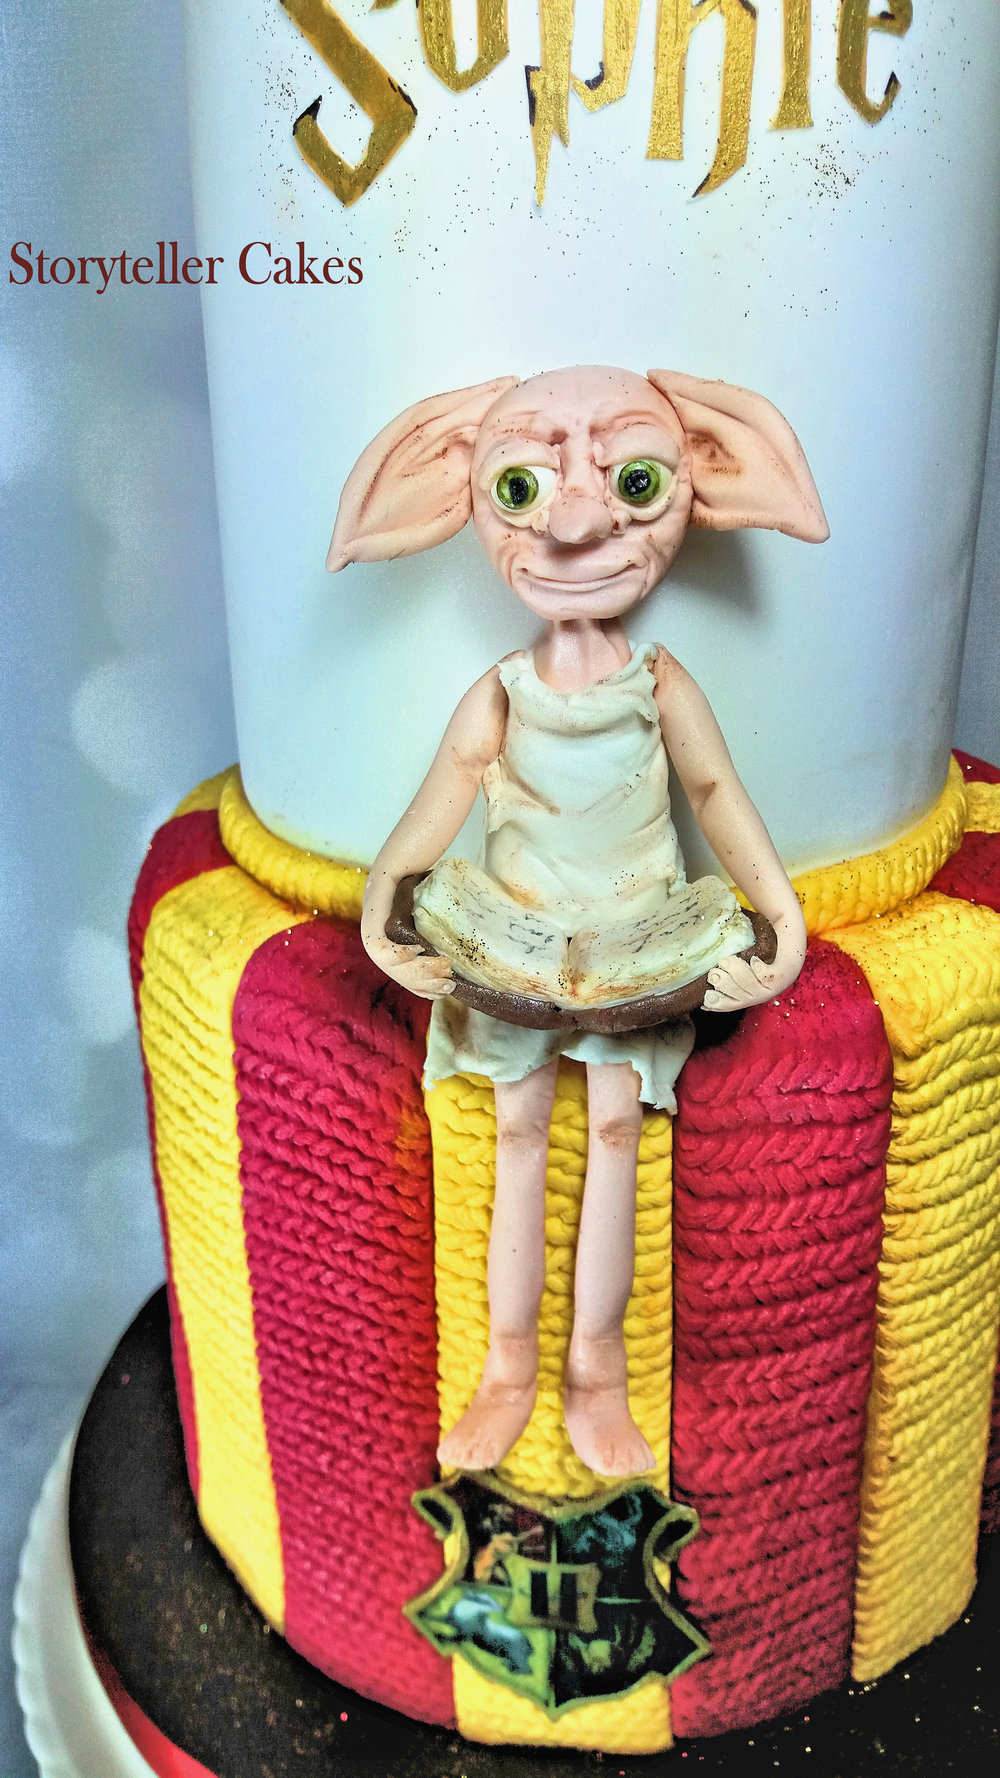 harry potter dobby cake 1.jpg